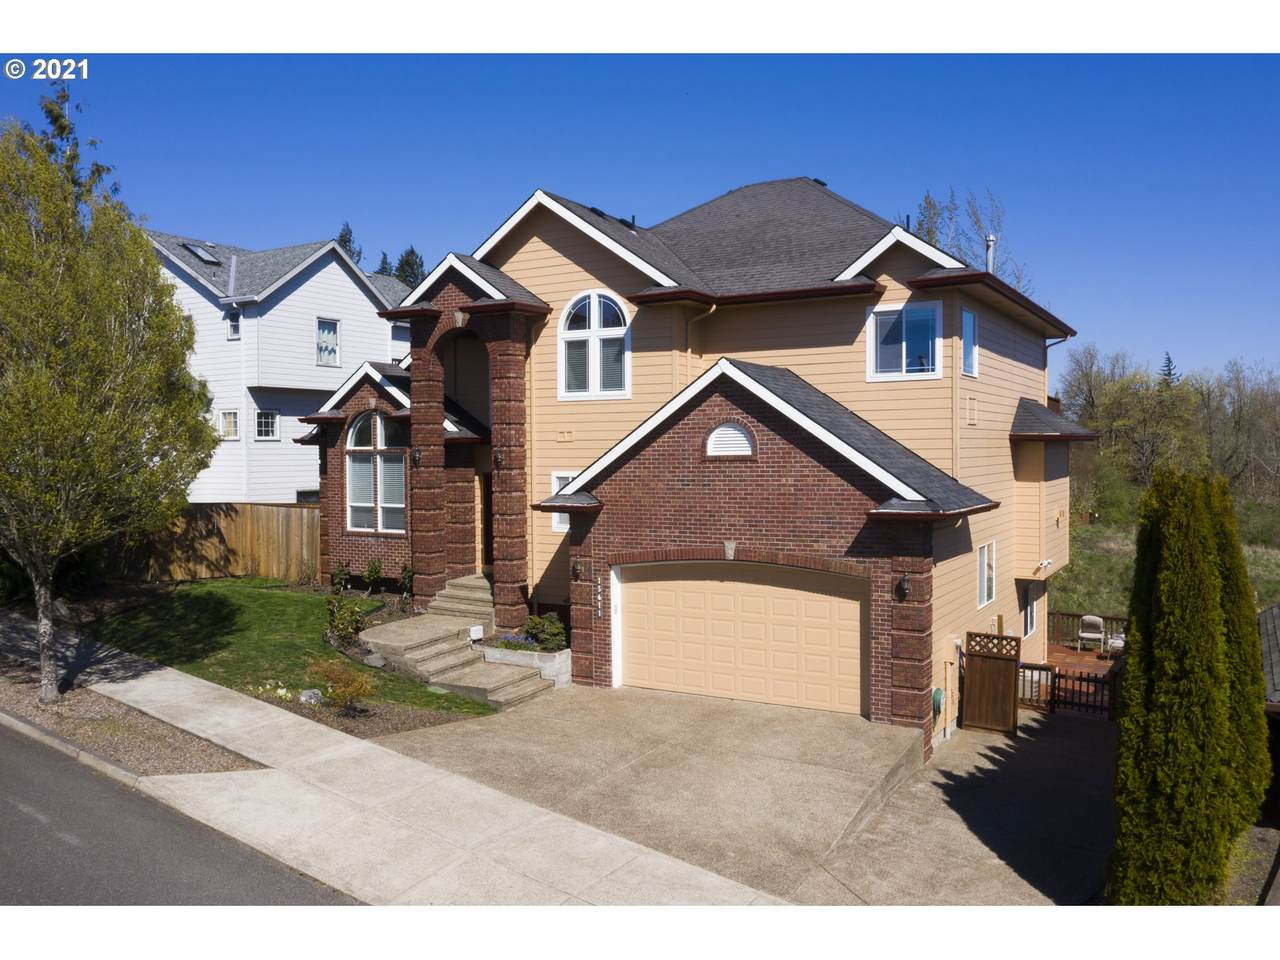 15611 Bybee Dr - Photo 1